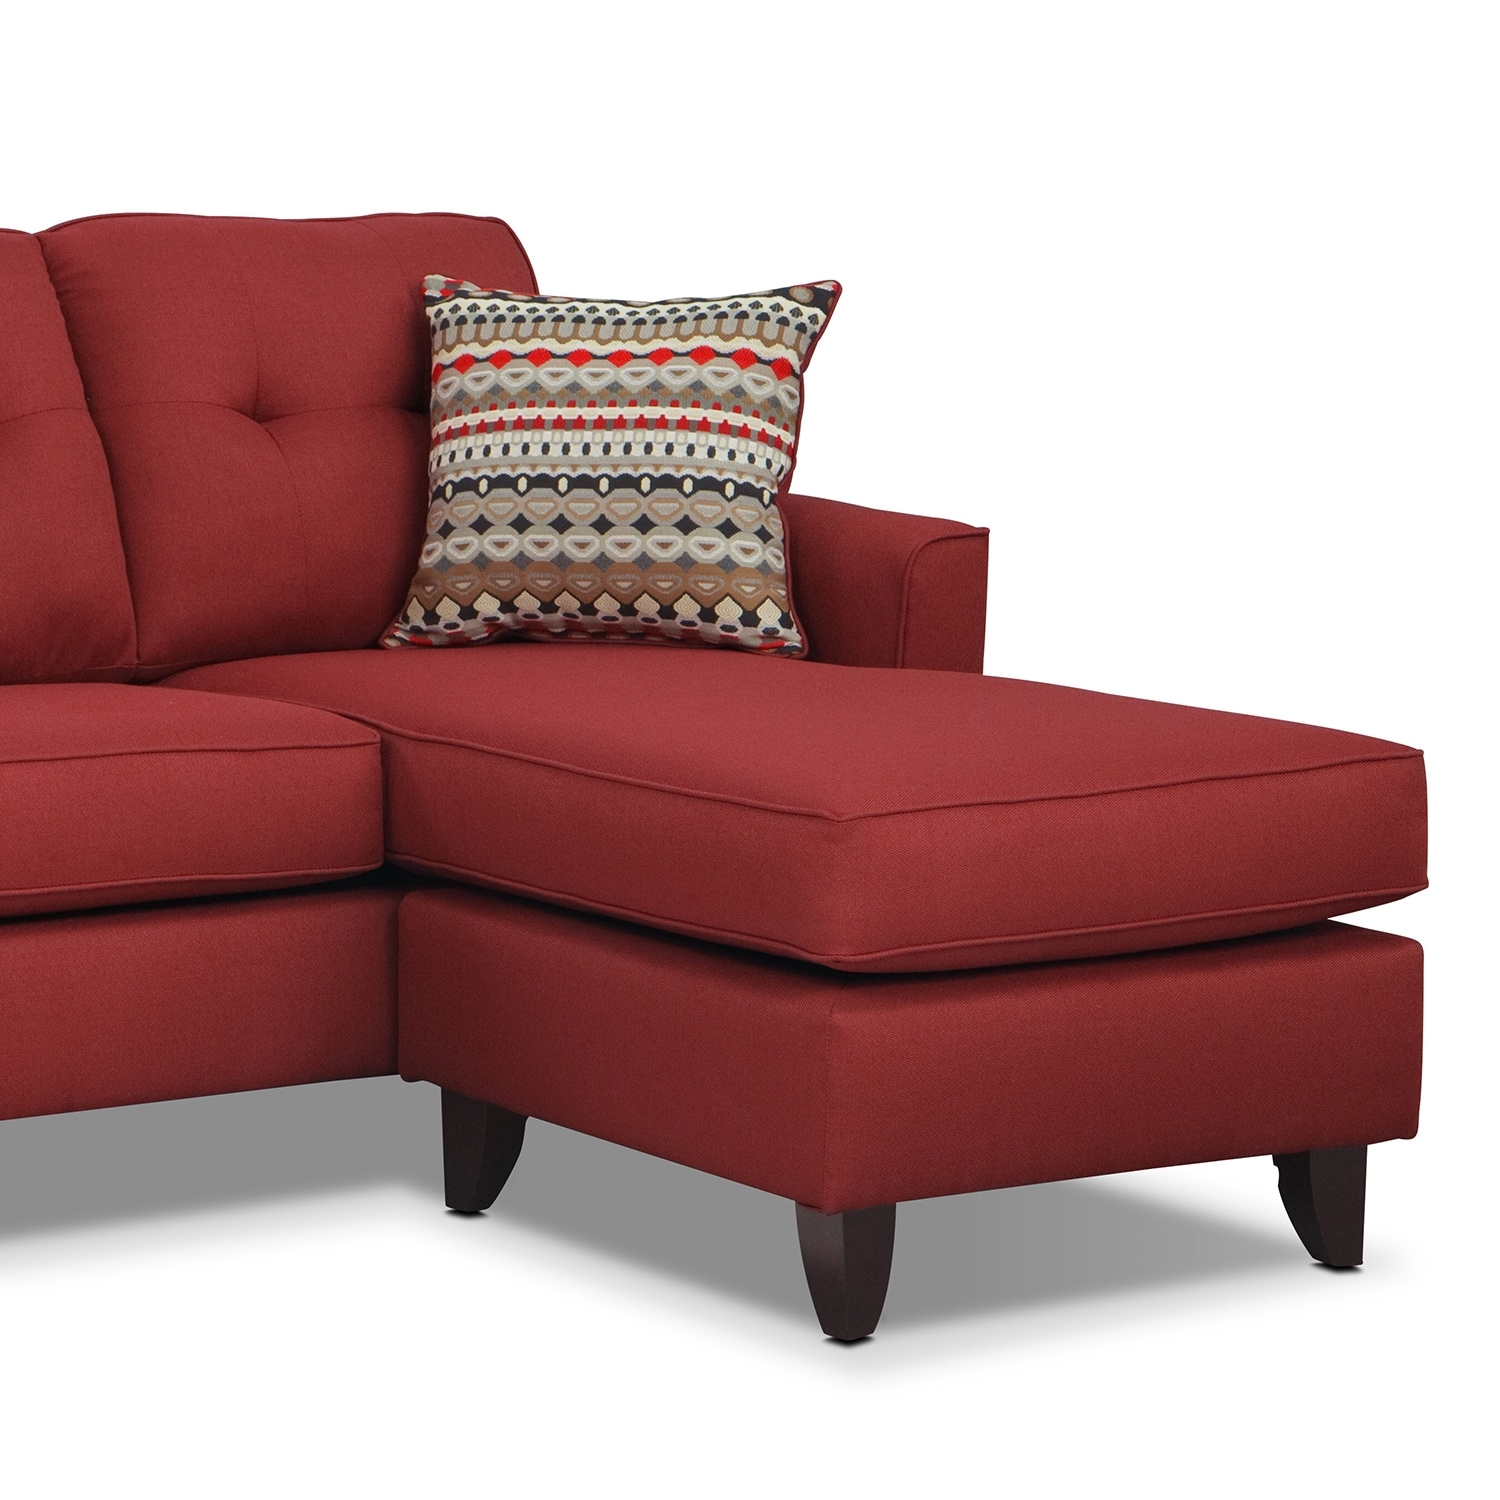 marco chaise sofa  red  value city furniture - click to change image